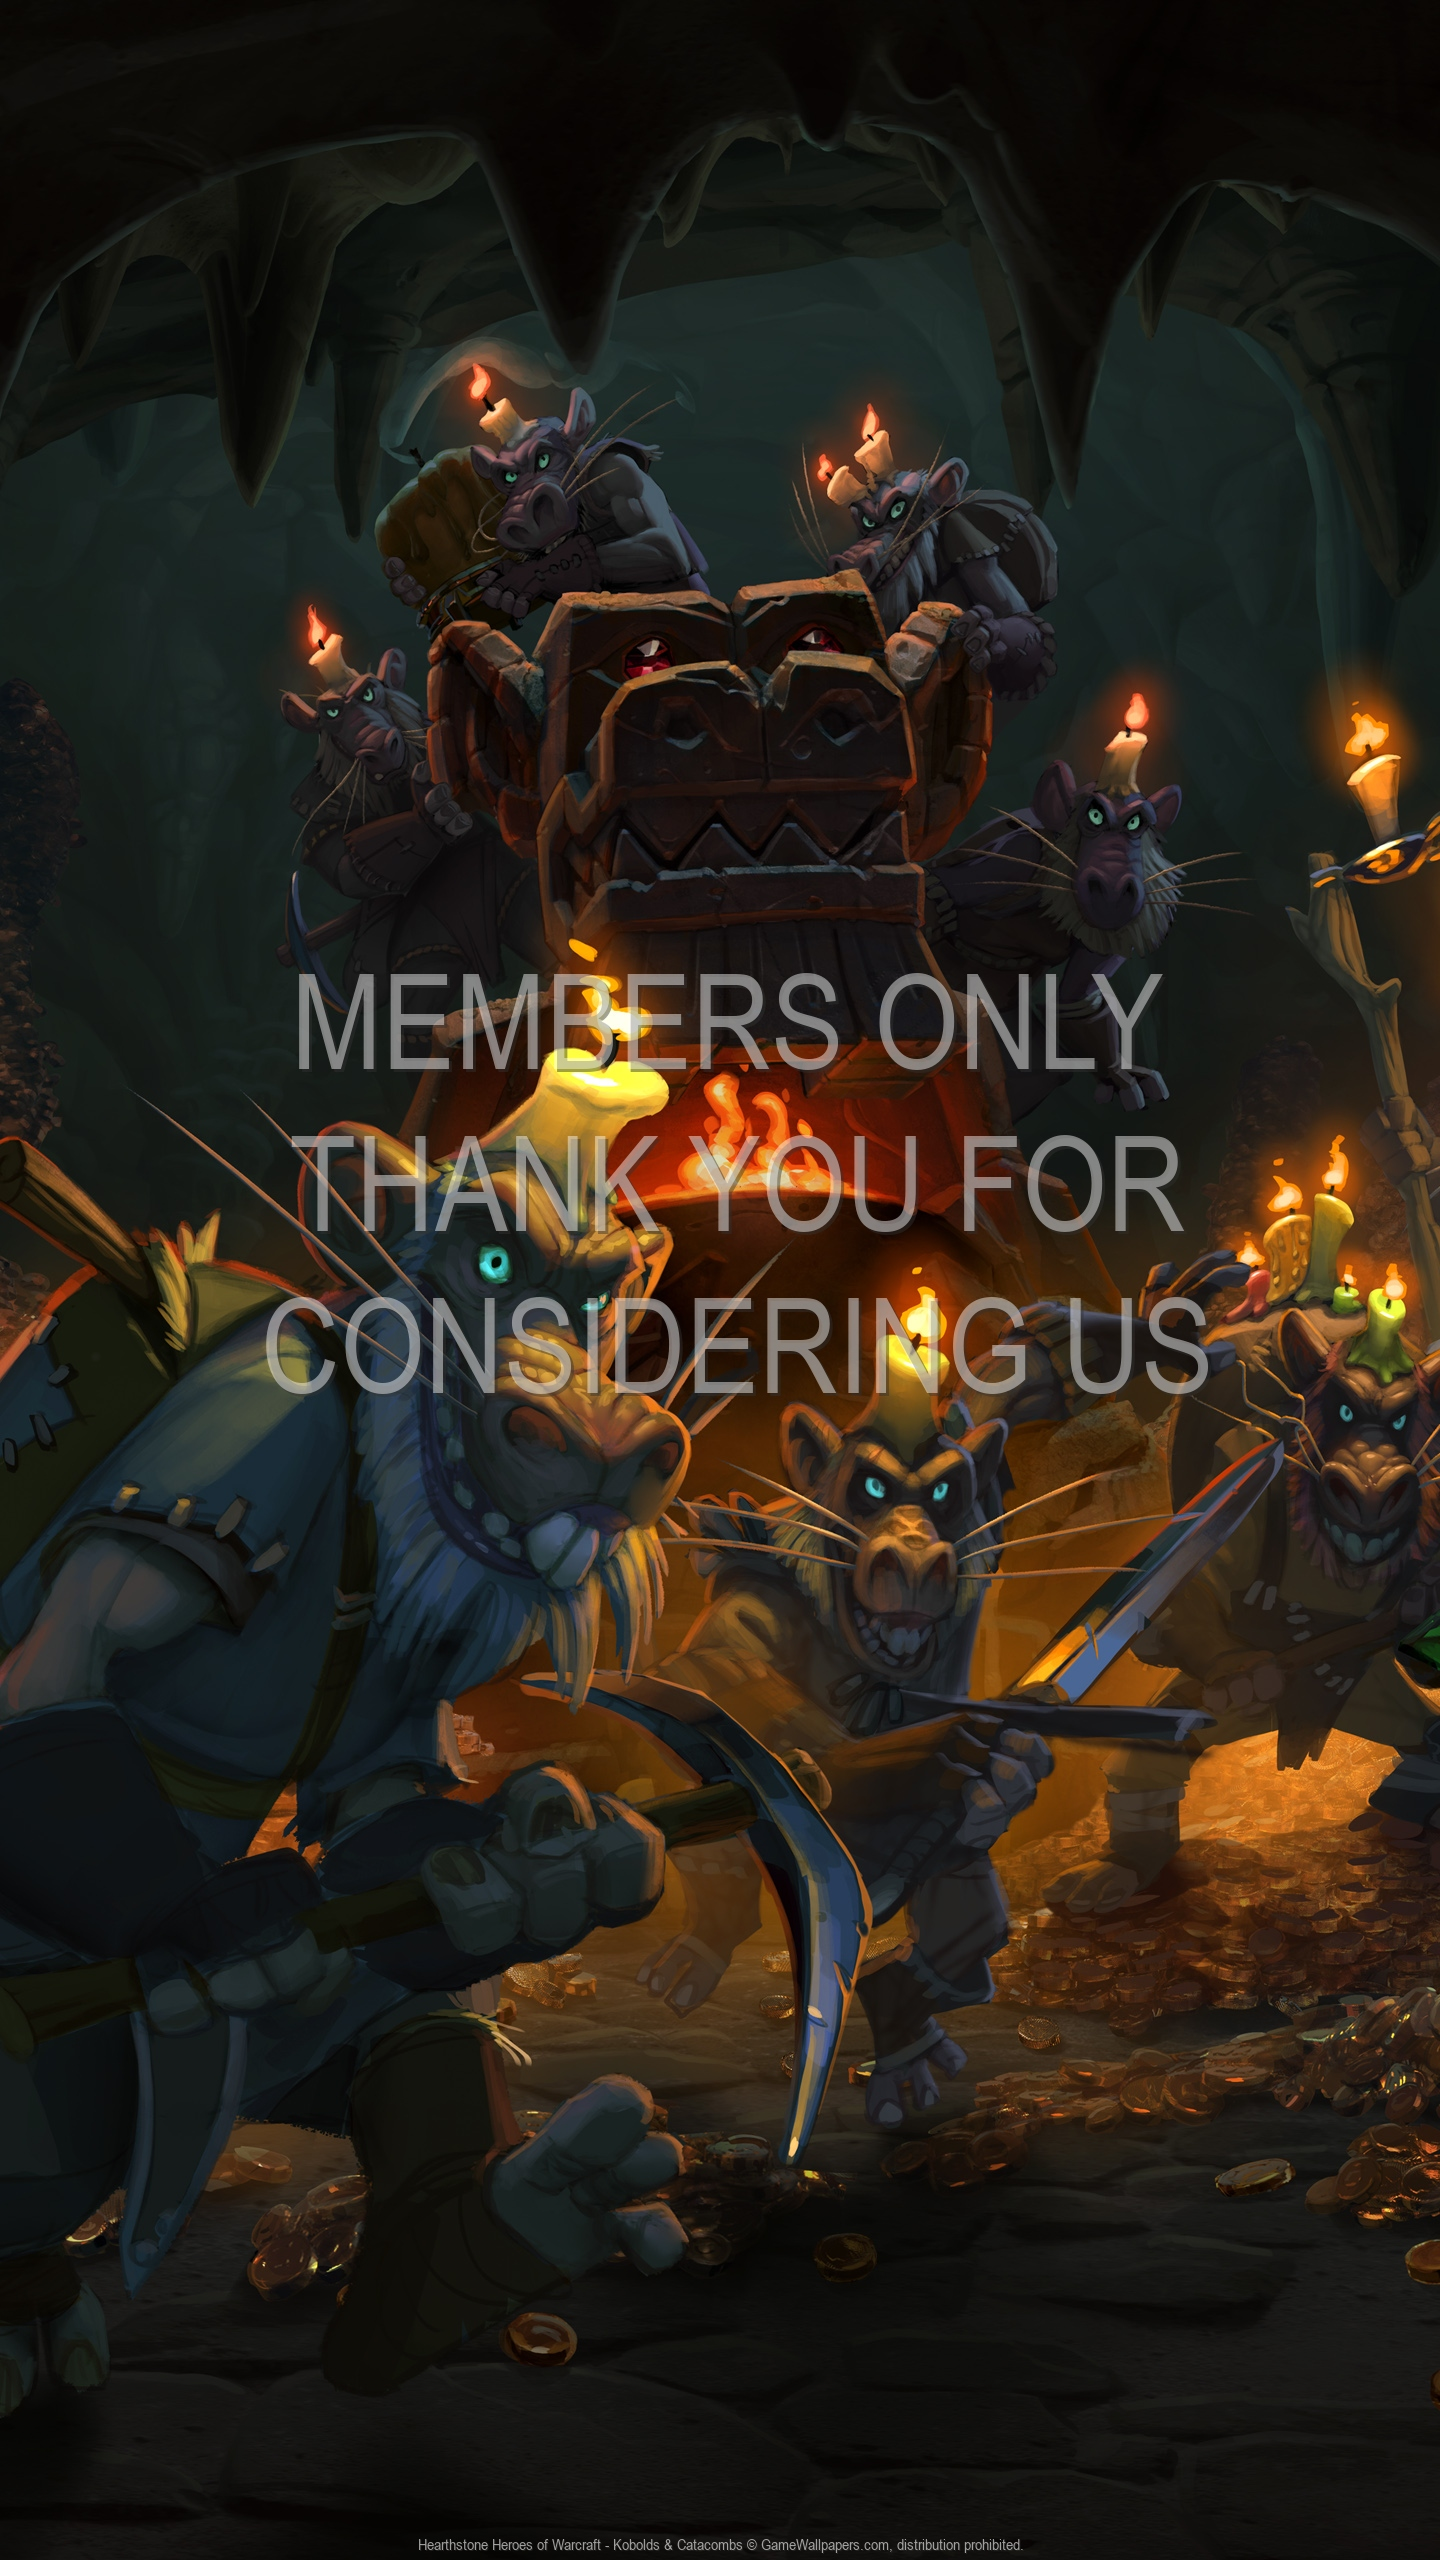 Hearthstone: Heroes of Warcraft - Kobolds & Catacombs 1920x1080 Mobile wallpaper or background 02